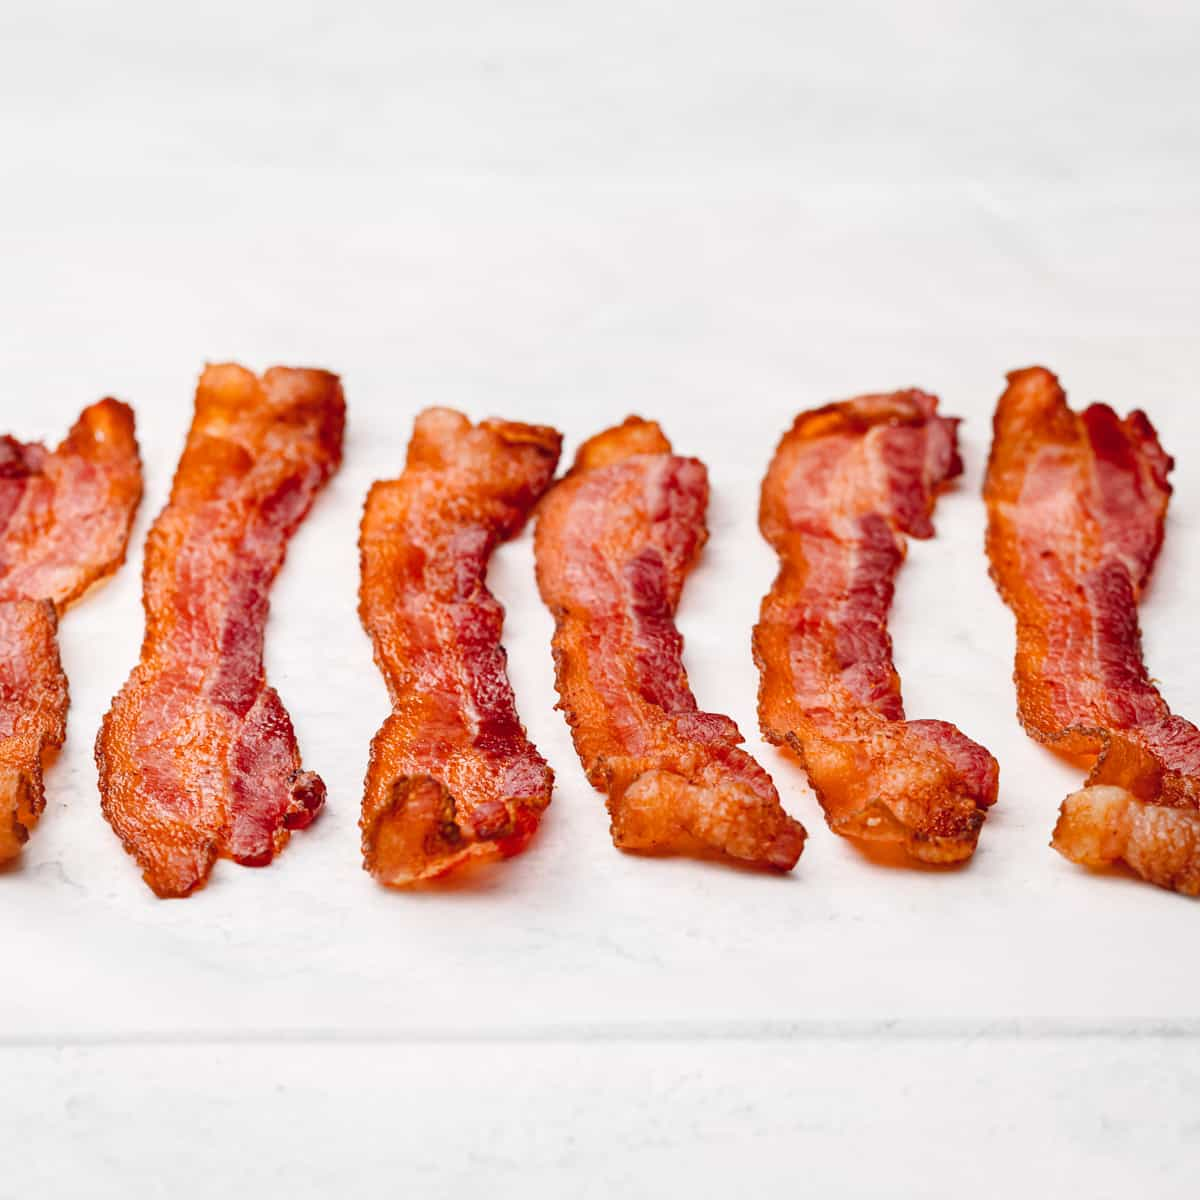 How to cook bacon in an air fryer.